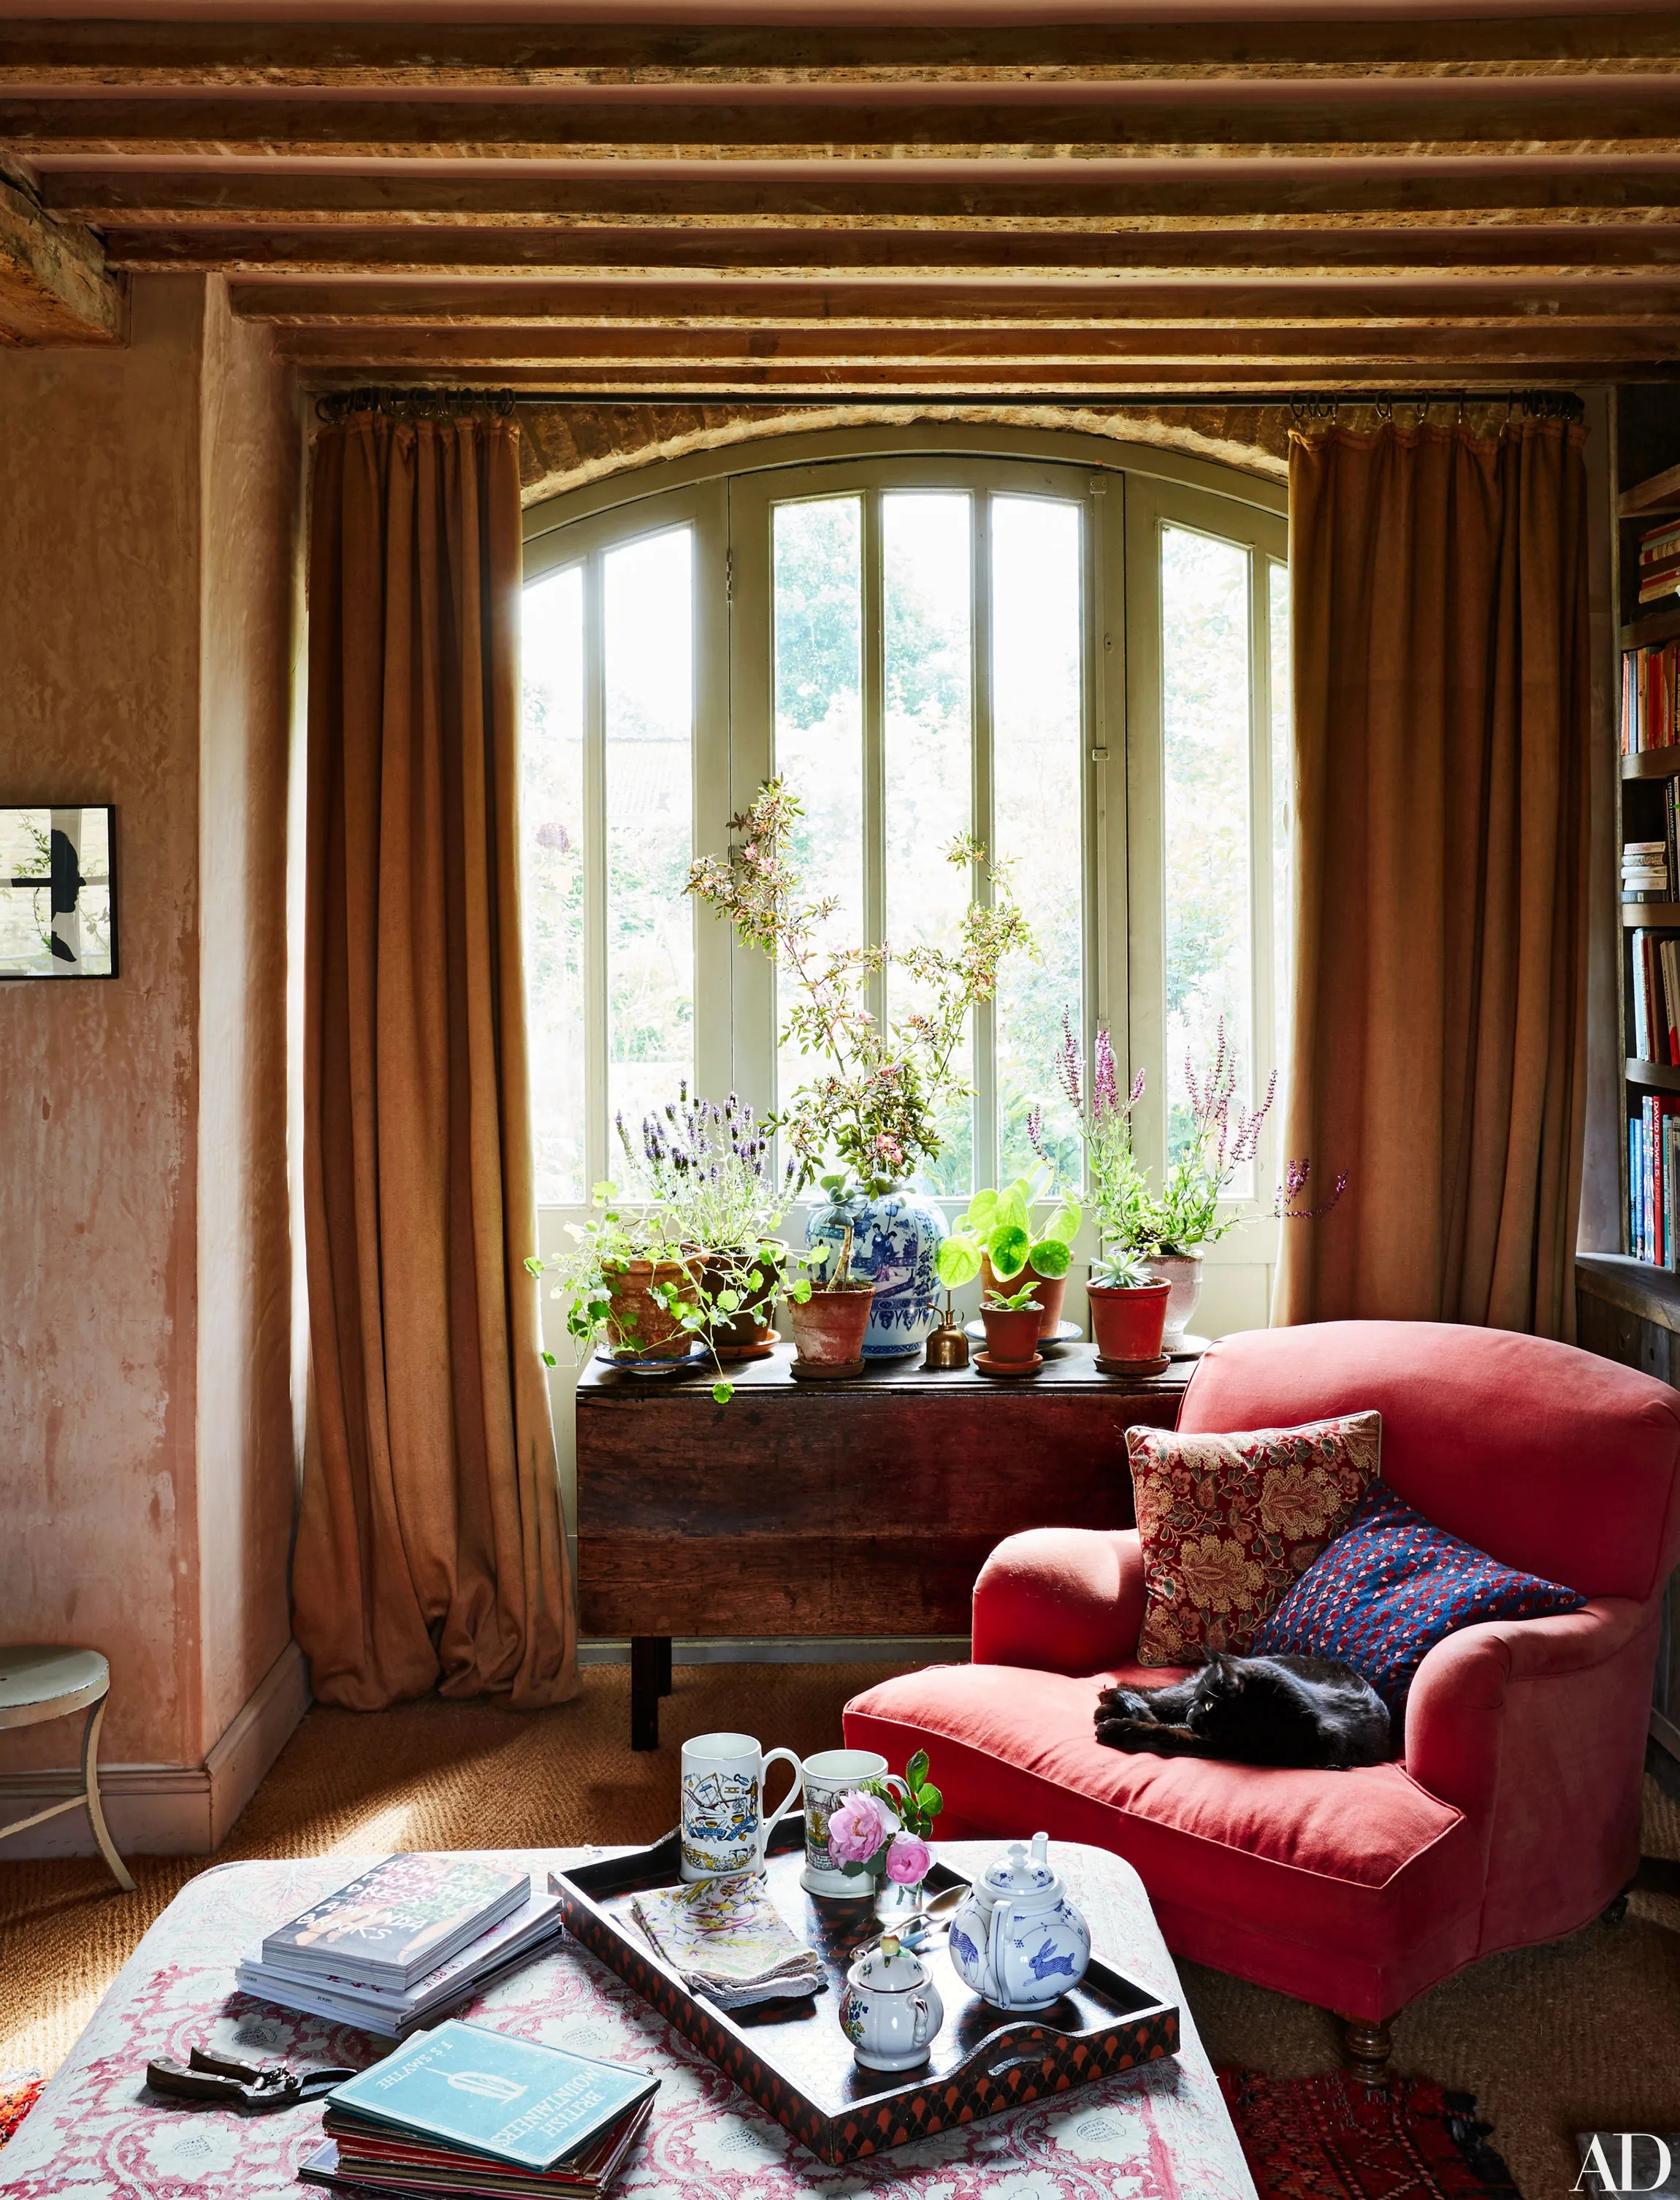 11 Classic Decor Elements Every English Country Home Should Have Architectural Digest